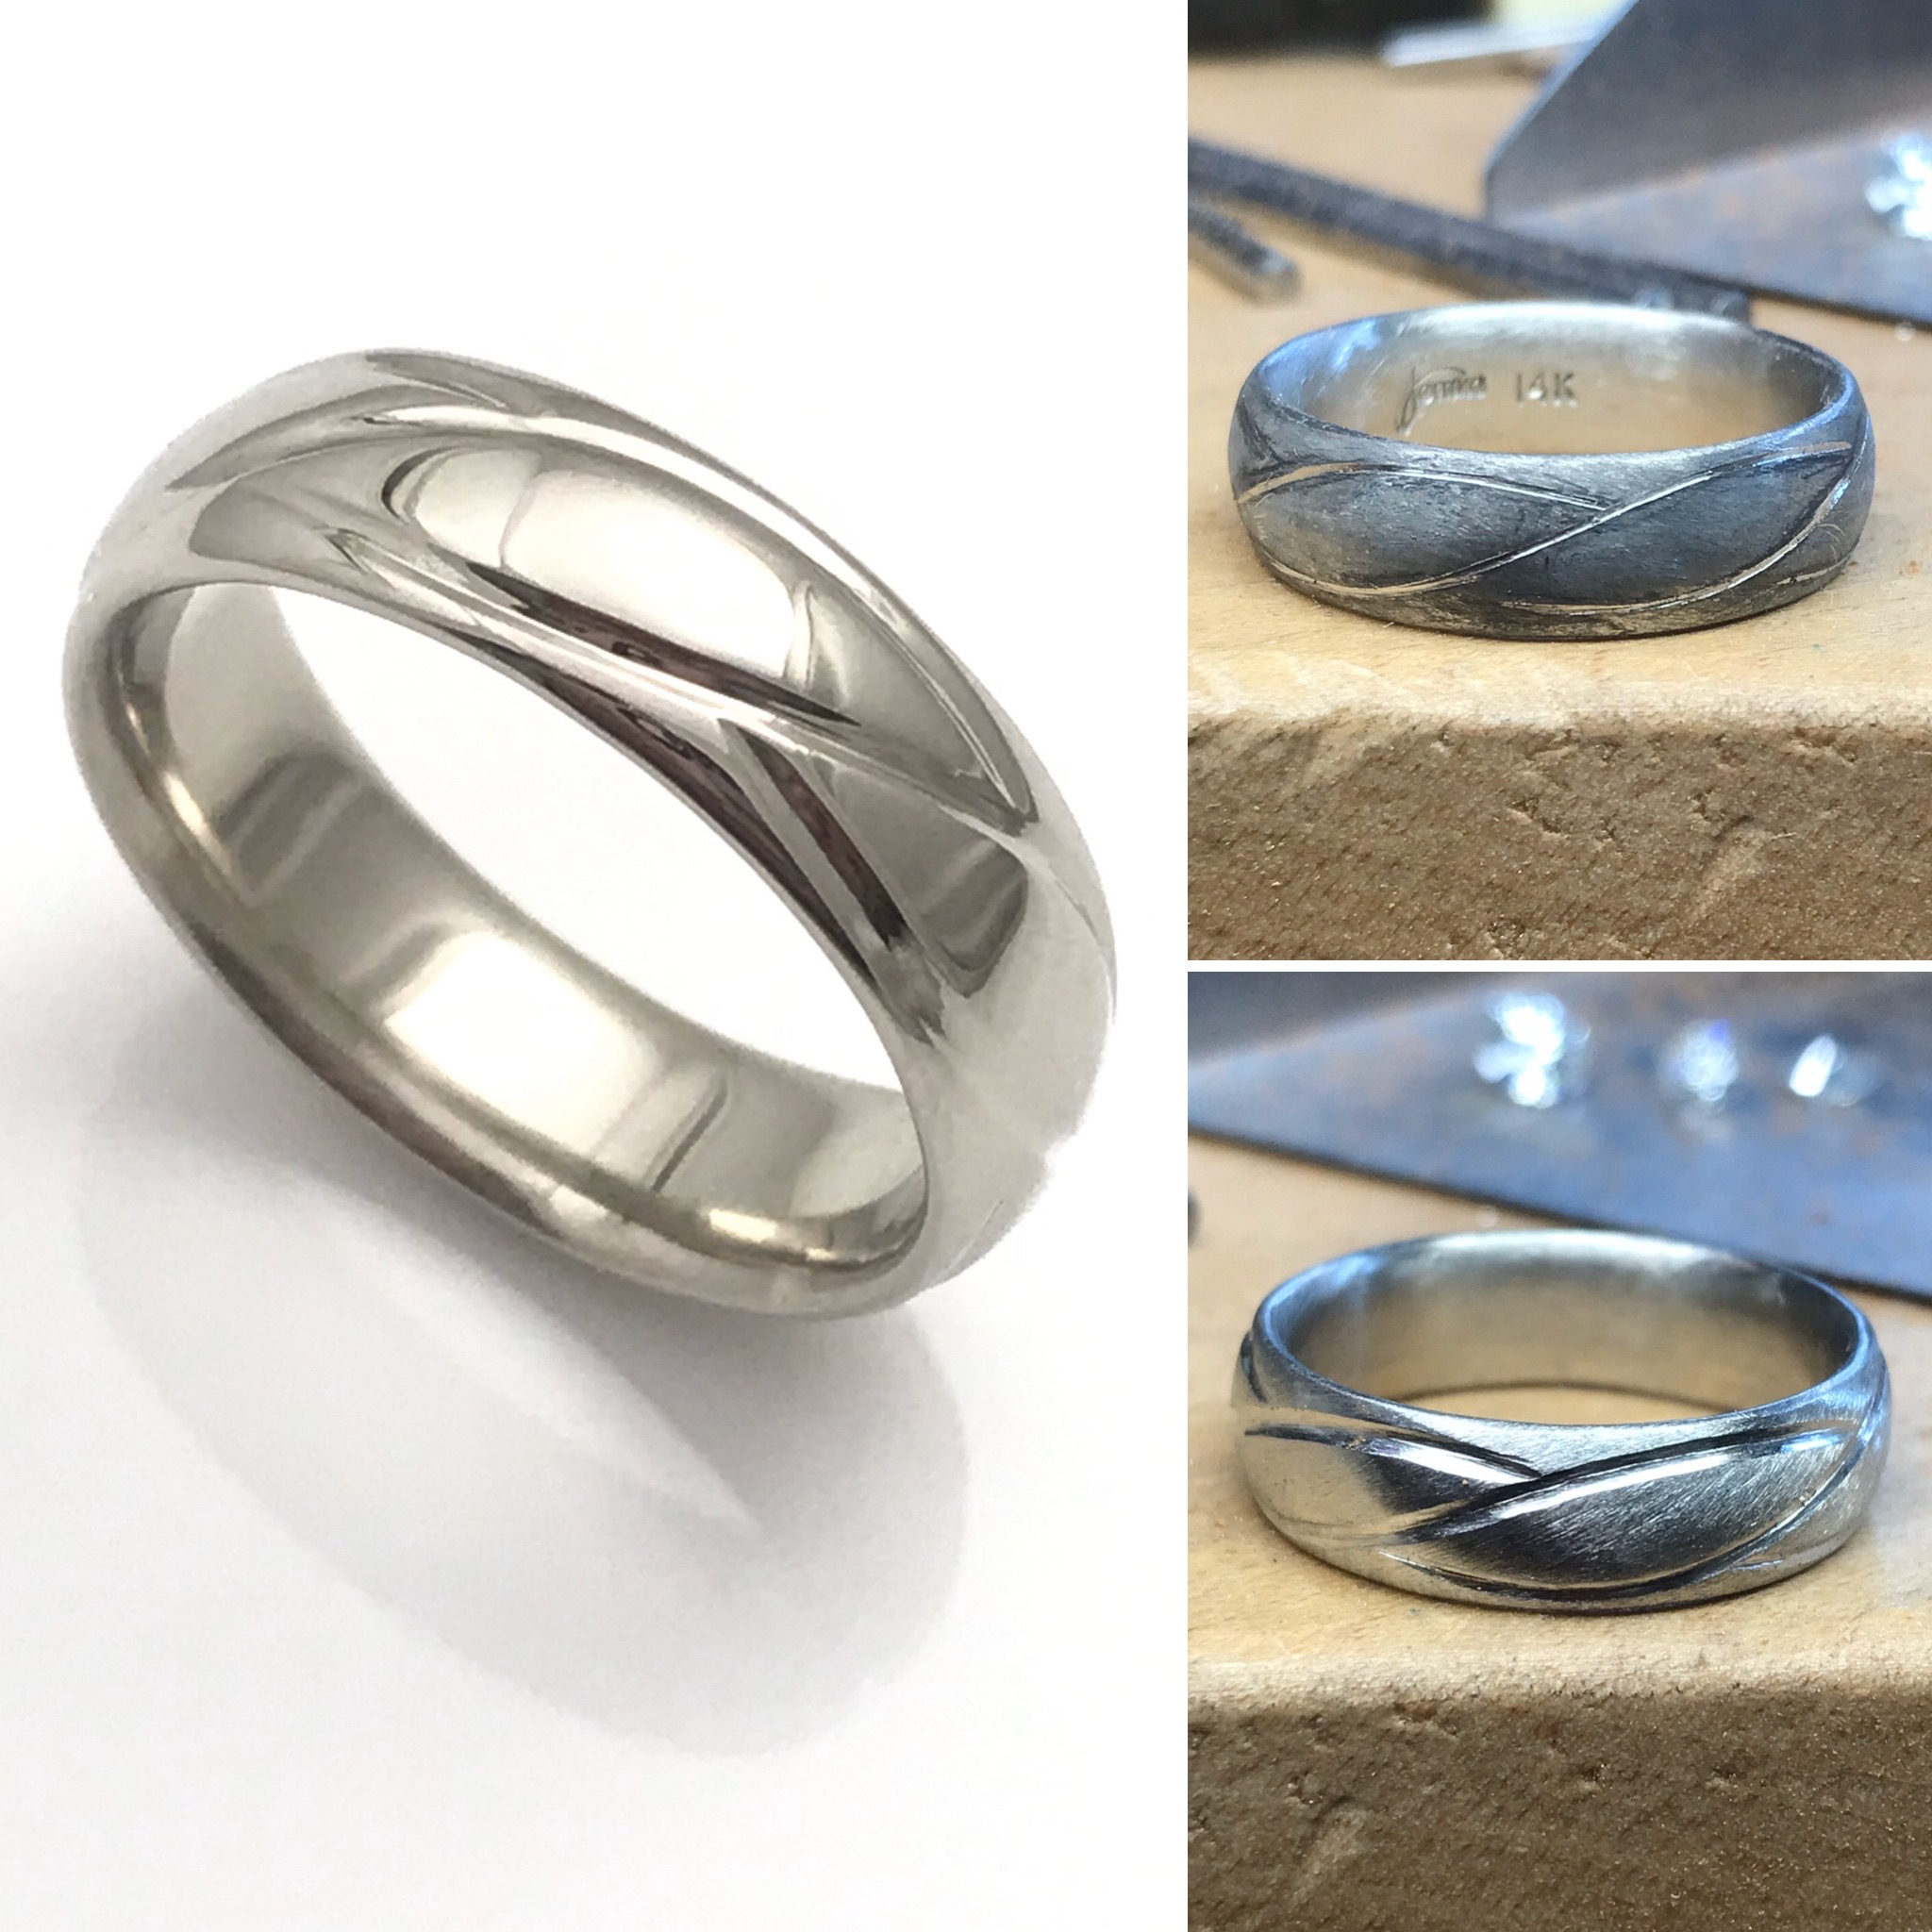 A grooms wedding band, custom made after his own vision